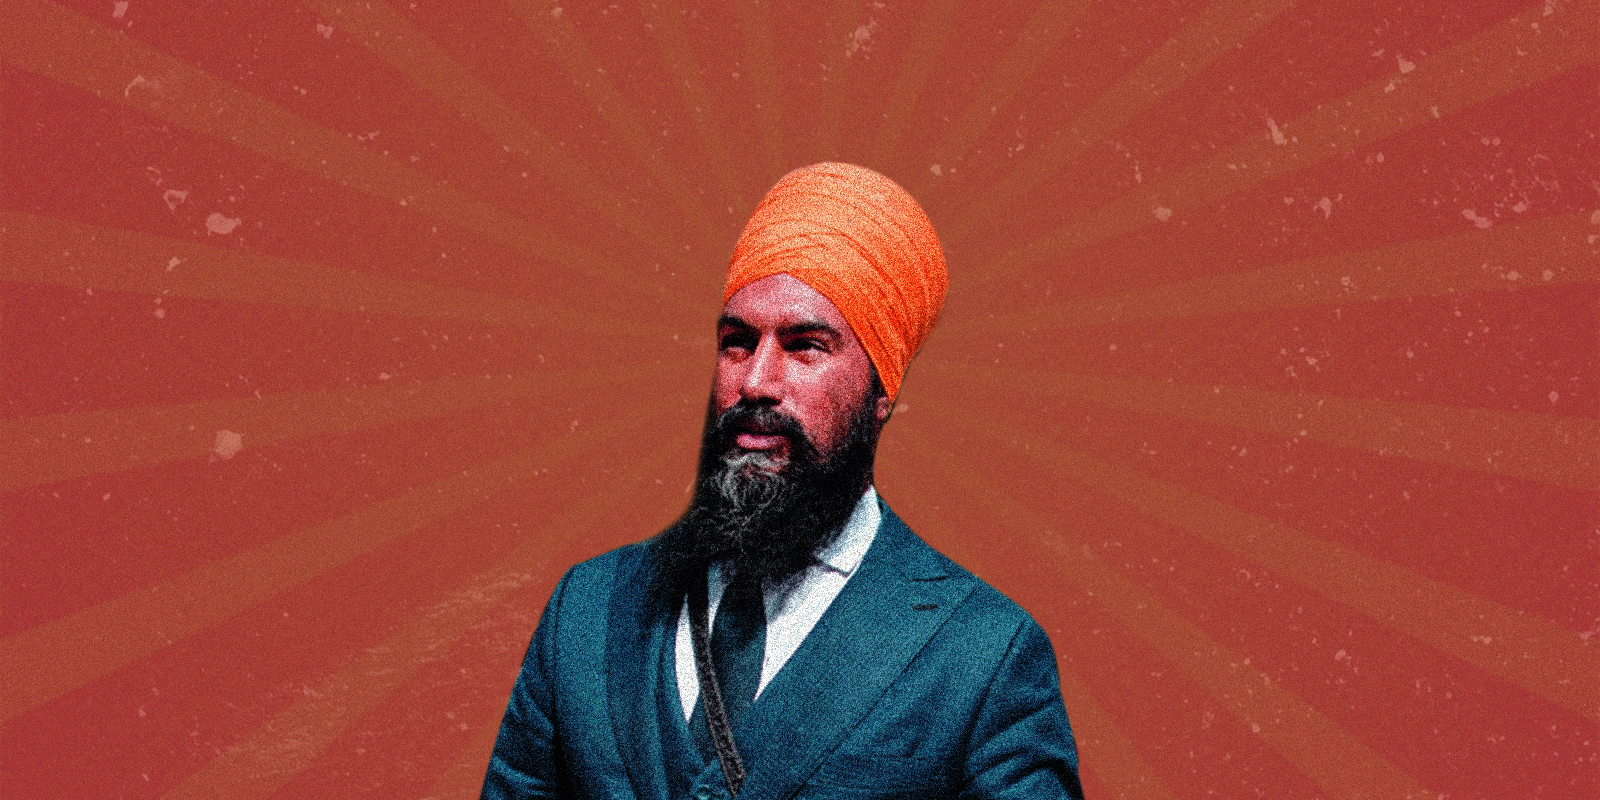 The NDP can only win with bold policies and even bolder leadership